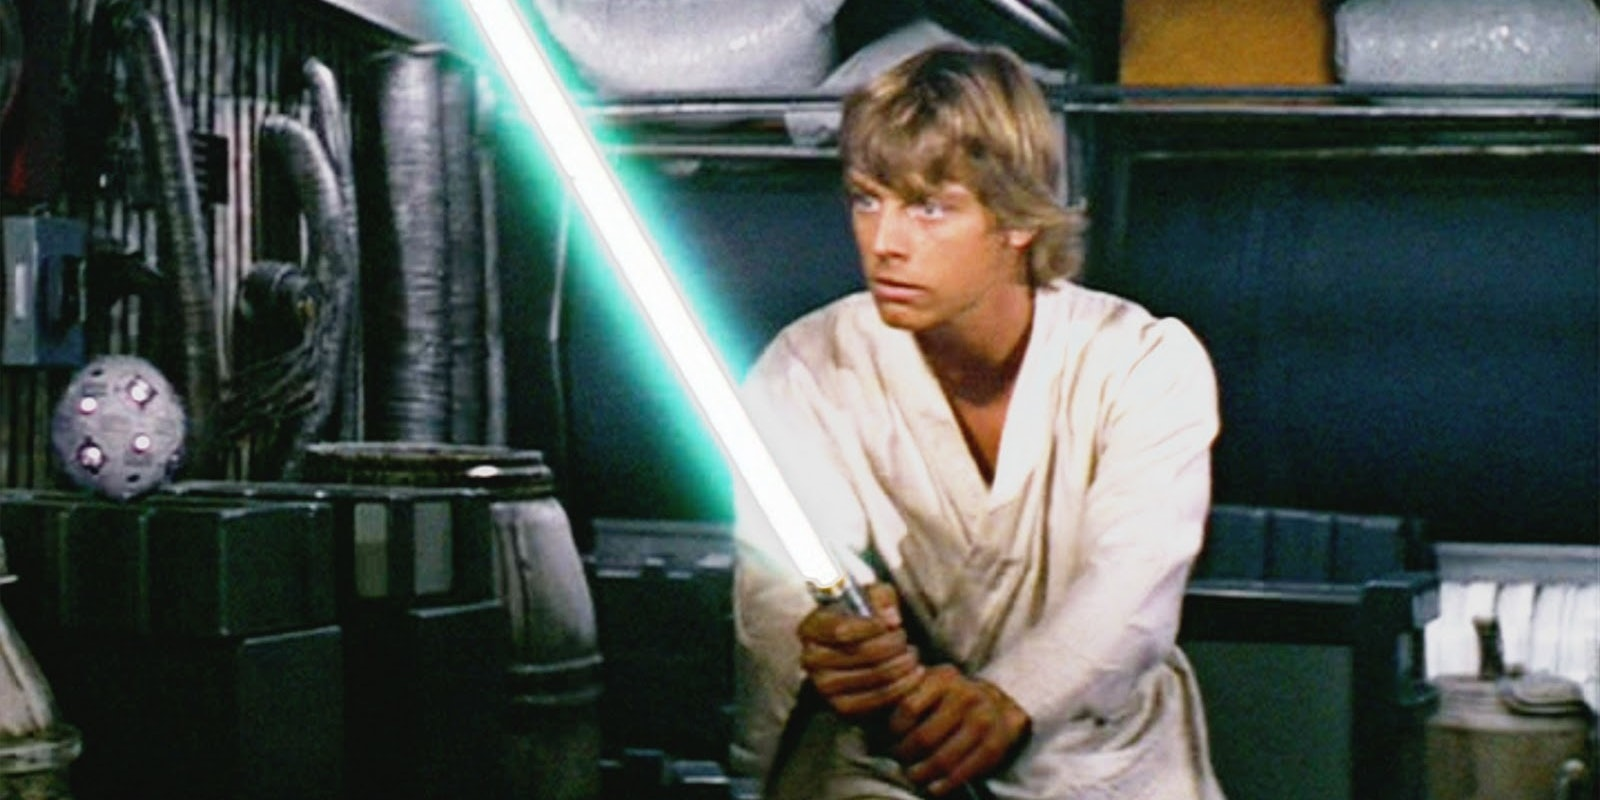 Is Luke Skywalker a Virgin?